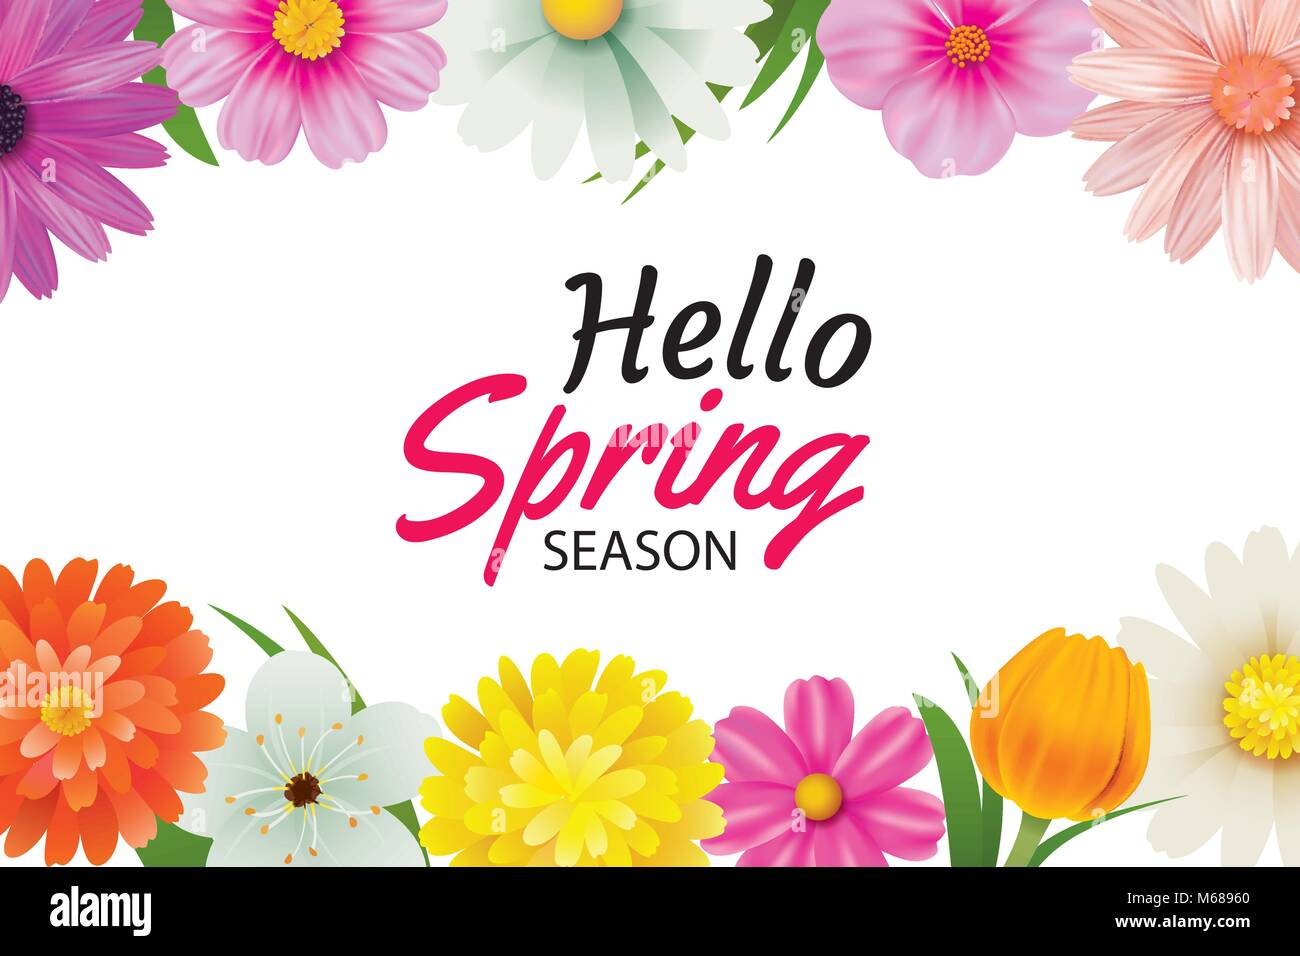 Hello spring season greeting card with colorful flower frame stock hello spring season greeting card with colorful flower frame background template can be use voucher wallpaperflyers invitation posters brochure m4hsunfo